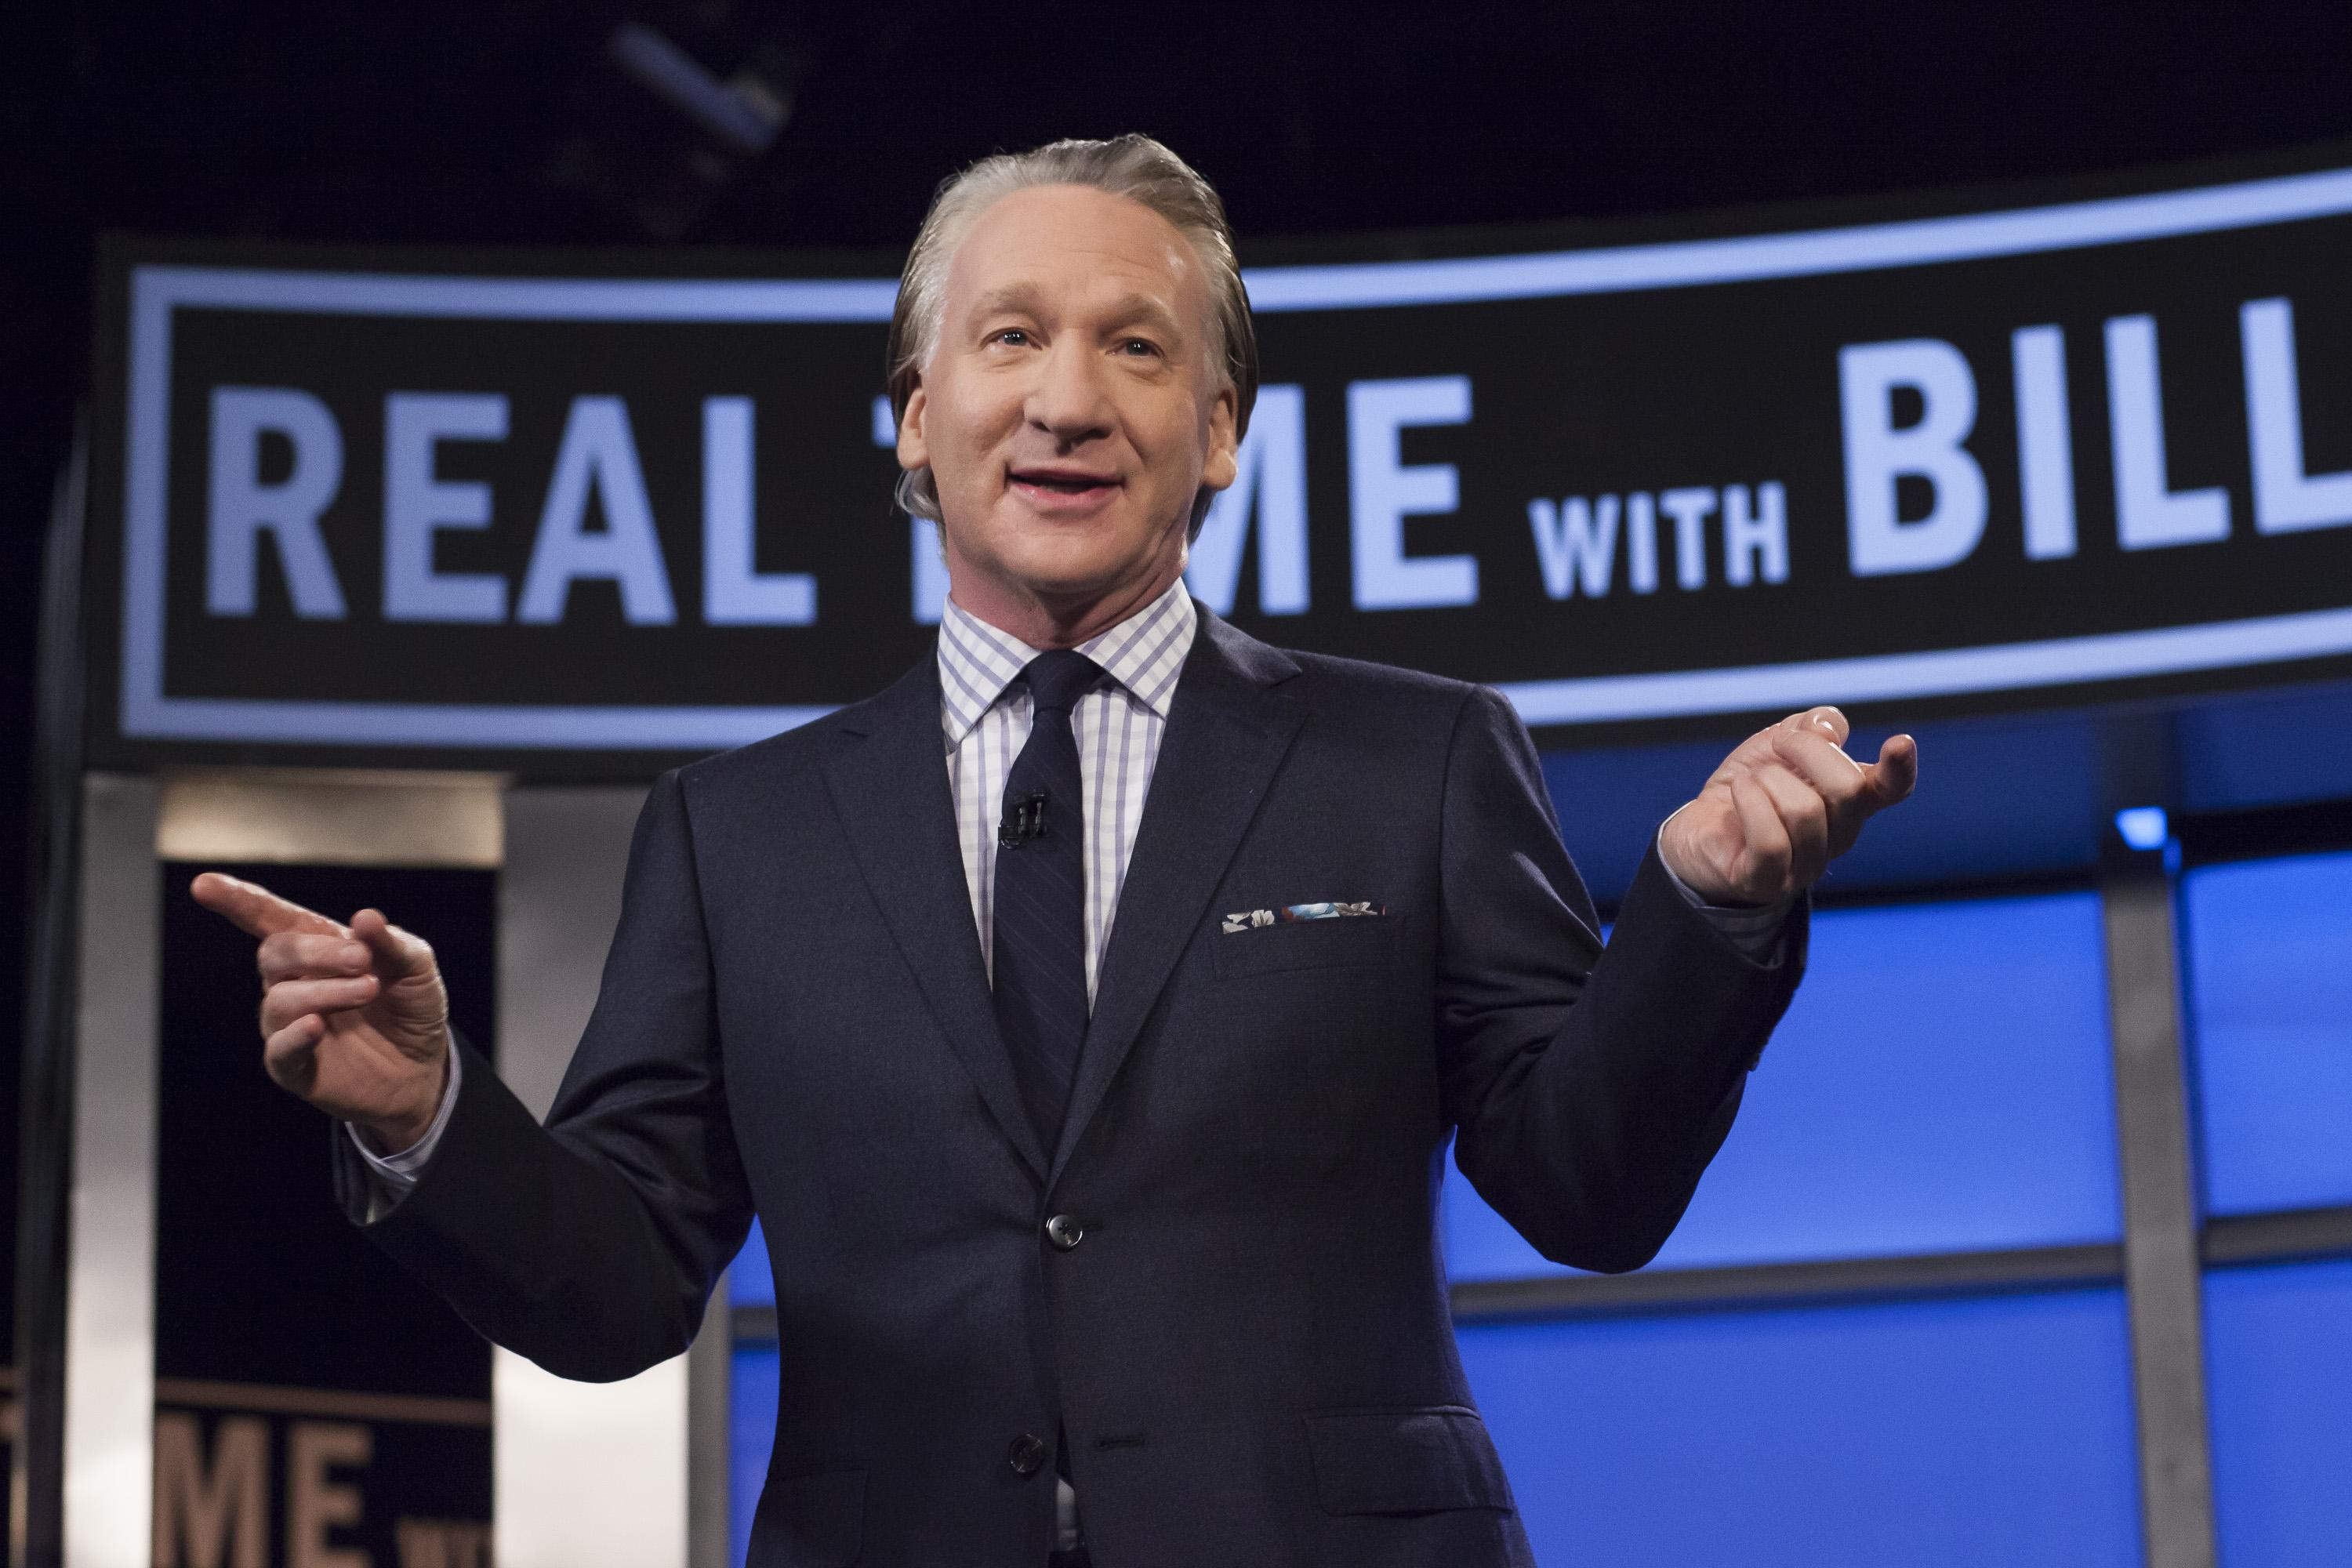 Liberal comedian Maher blasts BDS movement against Israel: 'A bulls--t purity test'